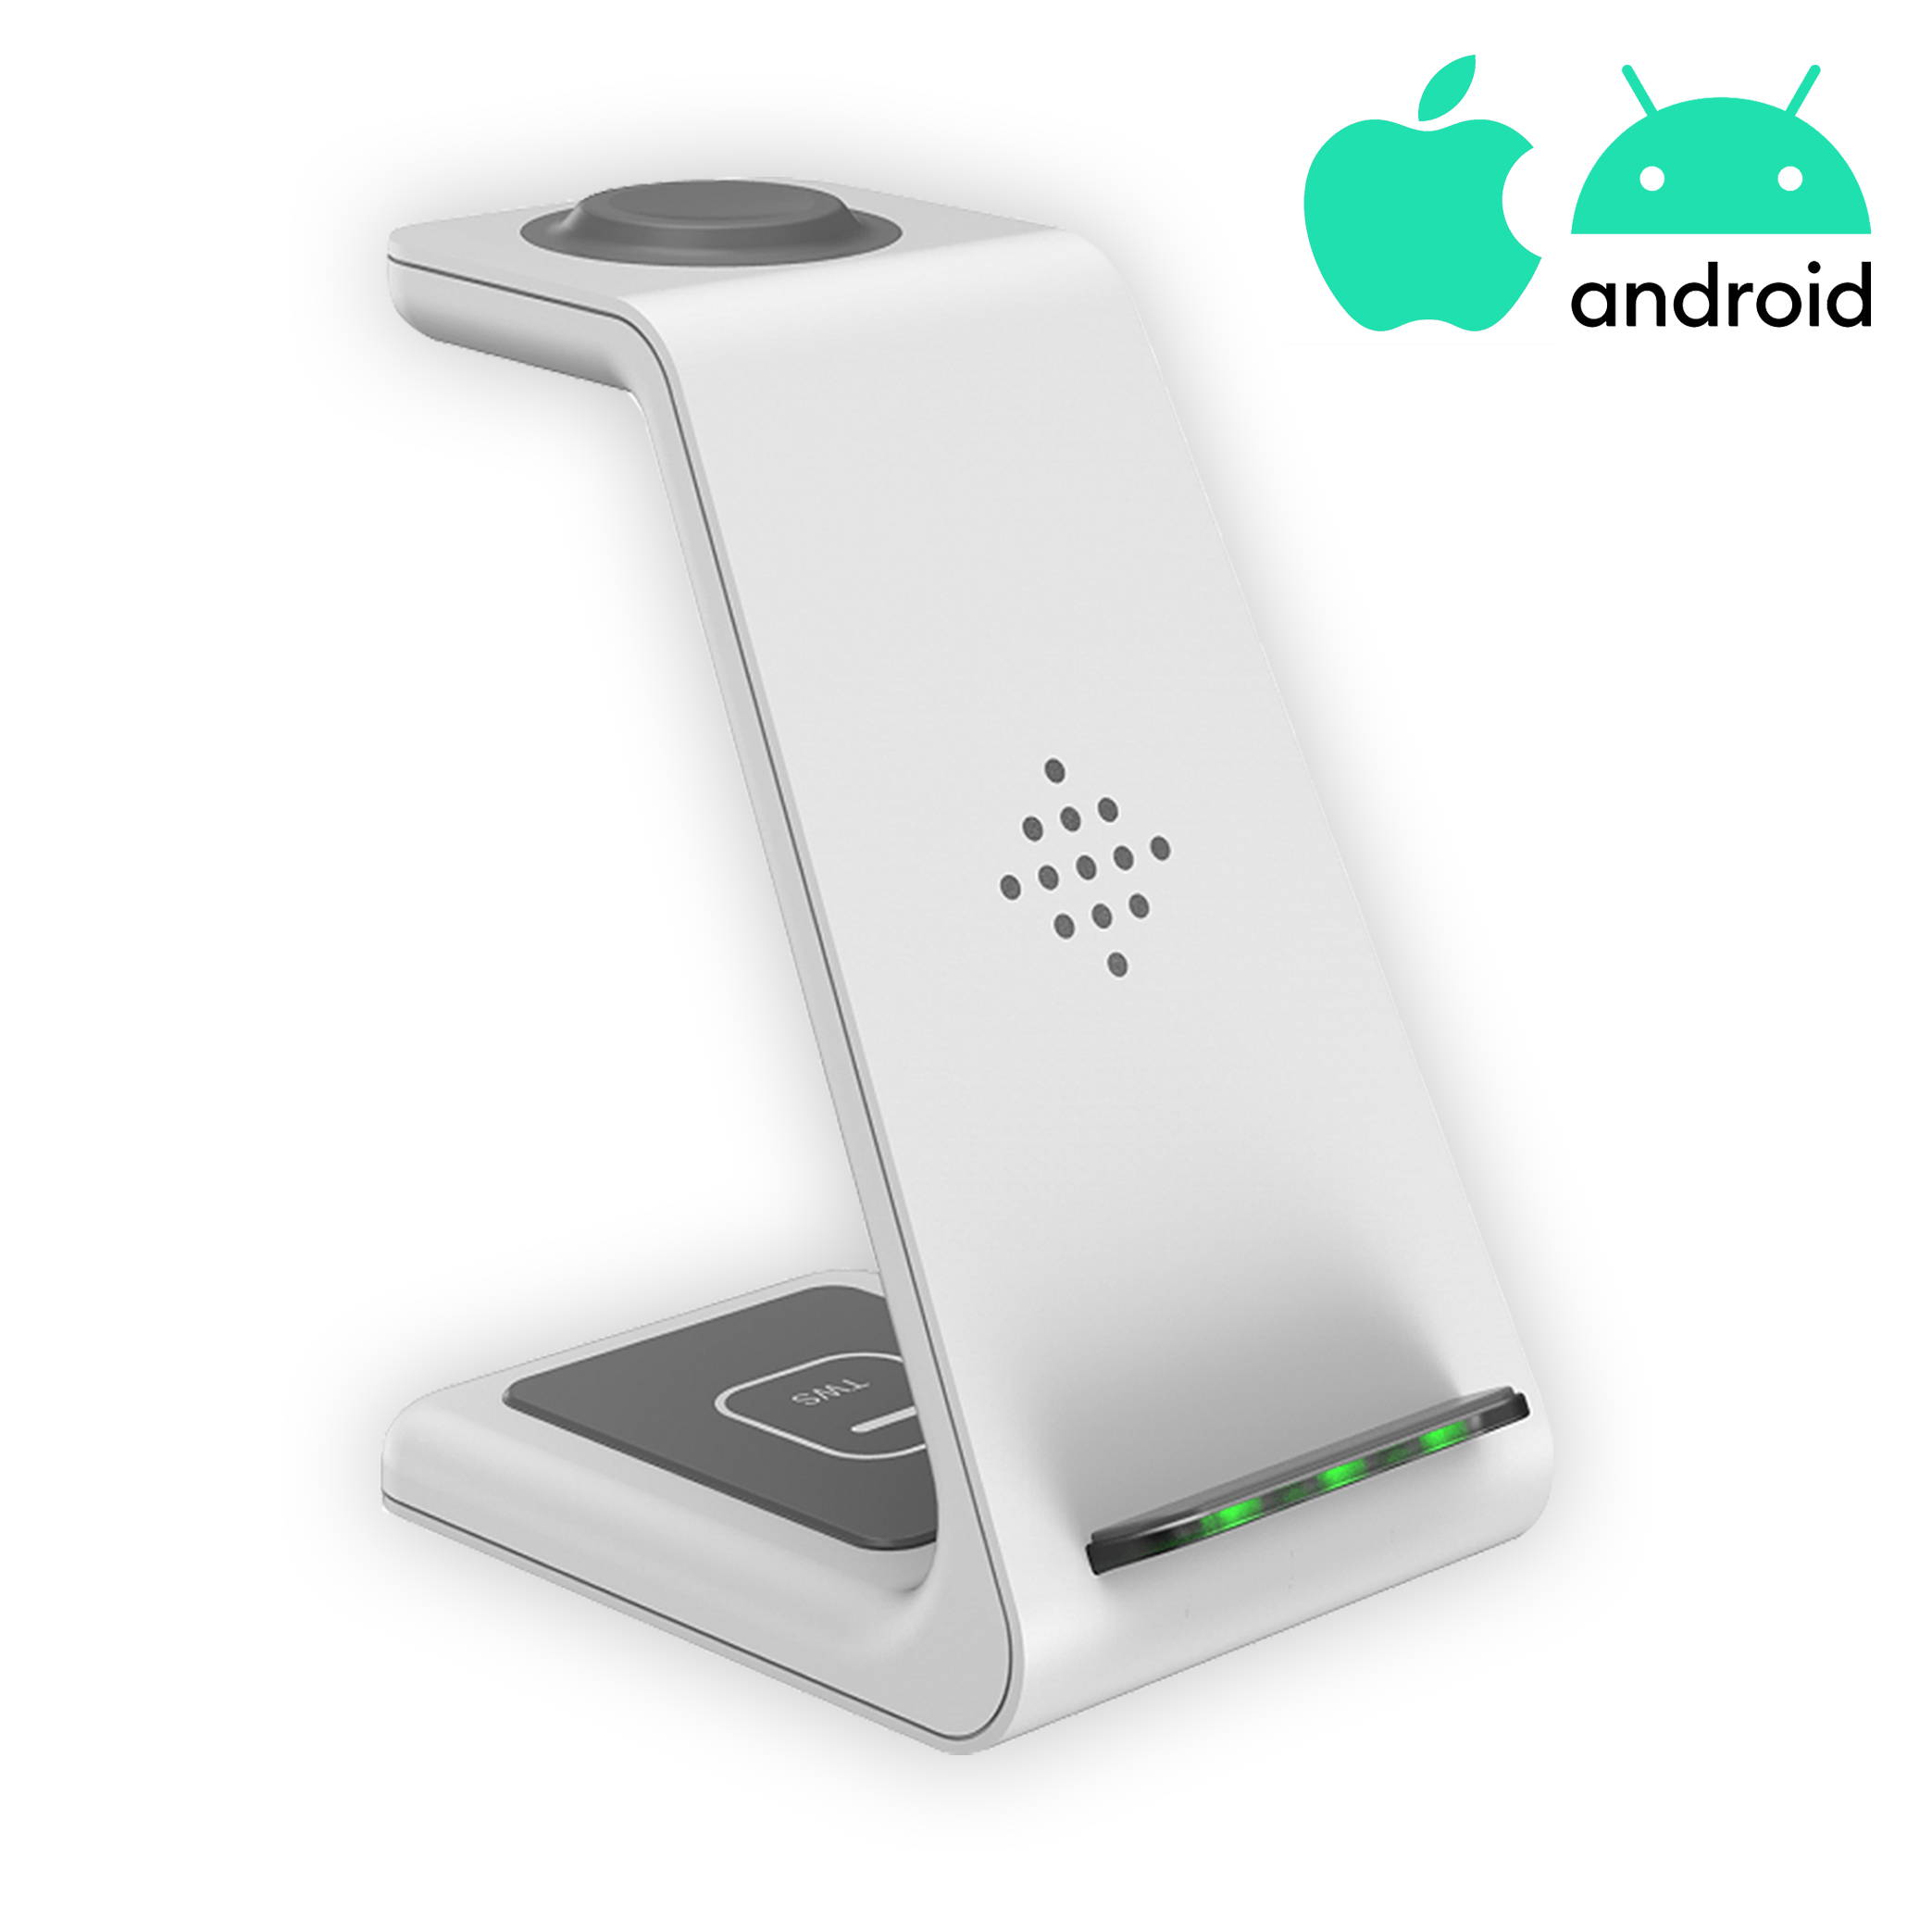 3-in-1 Wireless Charging Dock for Android and Apple